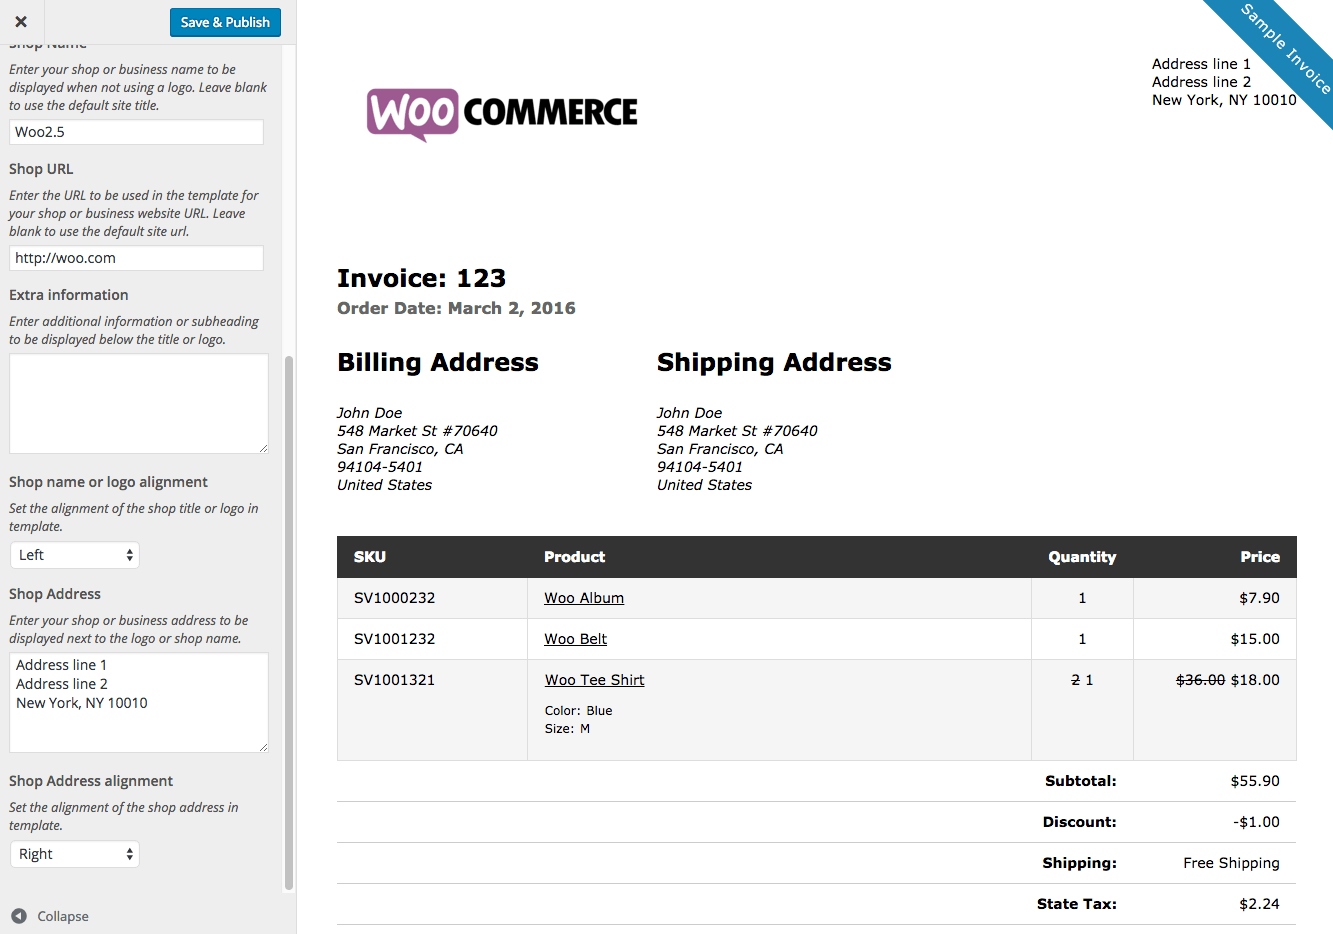 Modaoxus  Winning Woocommerce Print Invoices Amp Packing Lists  Woocommerce Docs With Magnificent Woocommerce Print Invoices  Packing Lists Customizer With Easy On The Eye Receipt Printer Price Also Small Business Receipt In Addition Apcoa Connect Receipts And Delivery Receipt Format As Well As Definition Of A Receipt Additionally Legal Receipt Form From Docswoocommercecom With Modaoxus  Magnificent Woocommerce Print Invoices Amp Packing Lists  Woocommerce Docs With Easy On The Eye Woocommerce Print Invoices  Packing Lists Customizer And Winning Receipt Printer Price Also Small Business Receipt In Addition Apcoa Connect Receipts From Docswoocommercecom